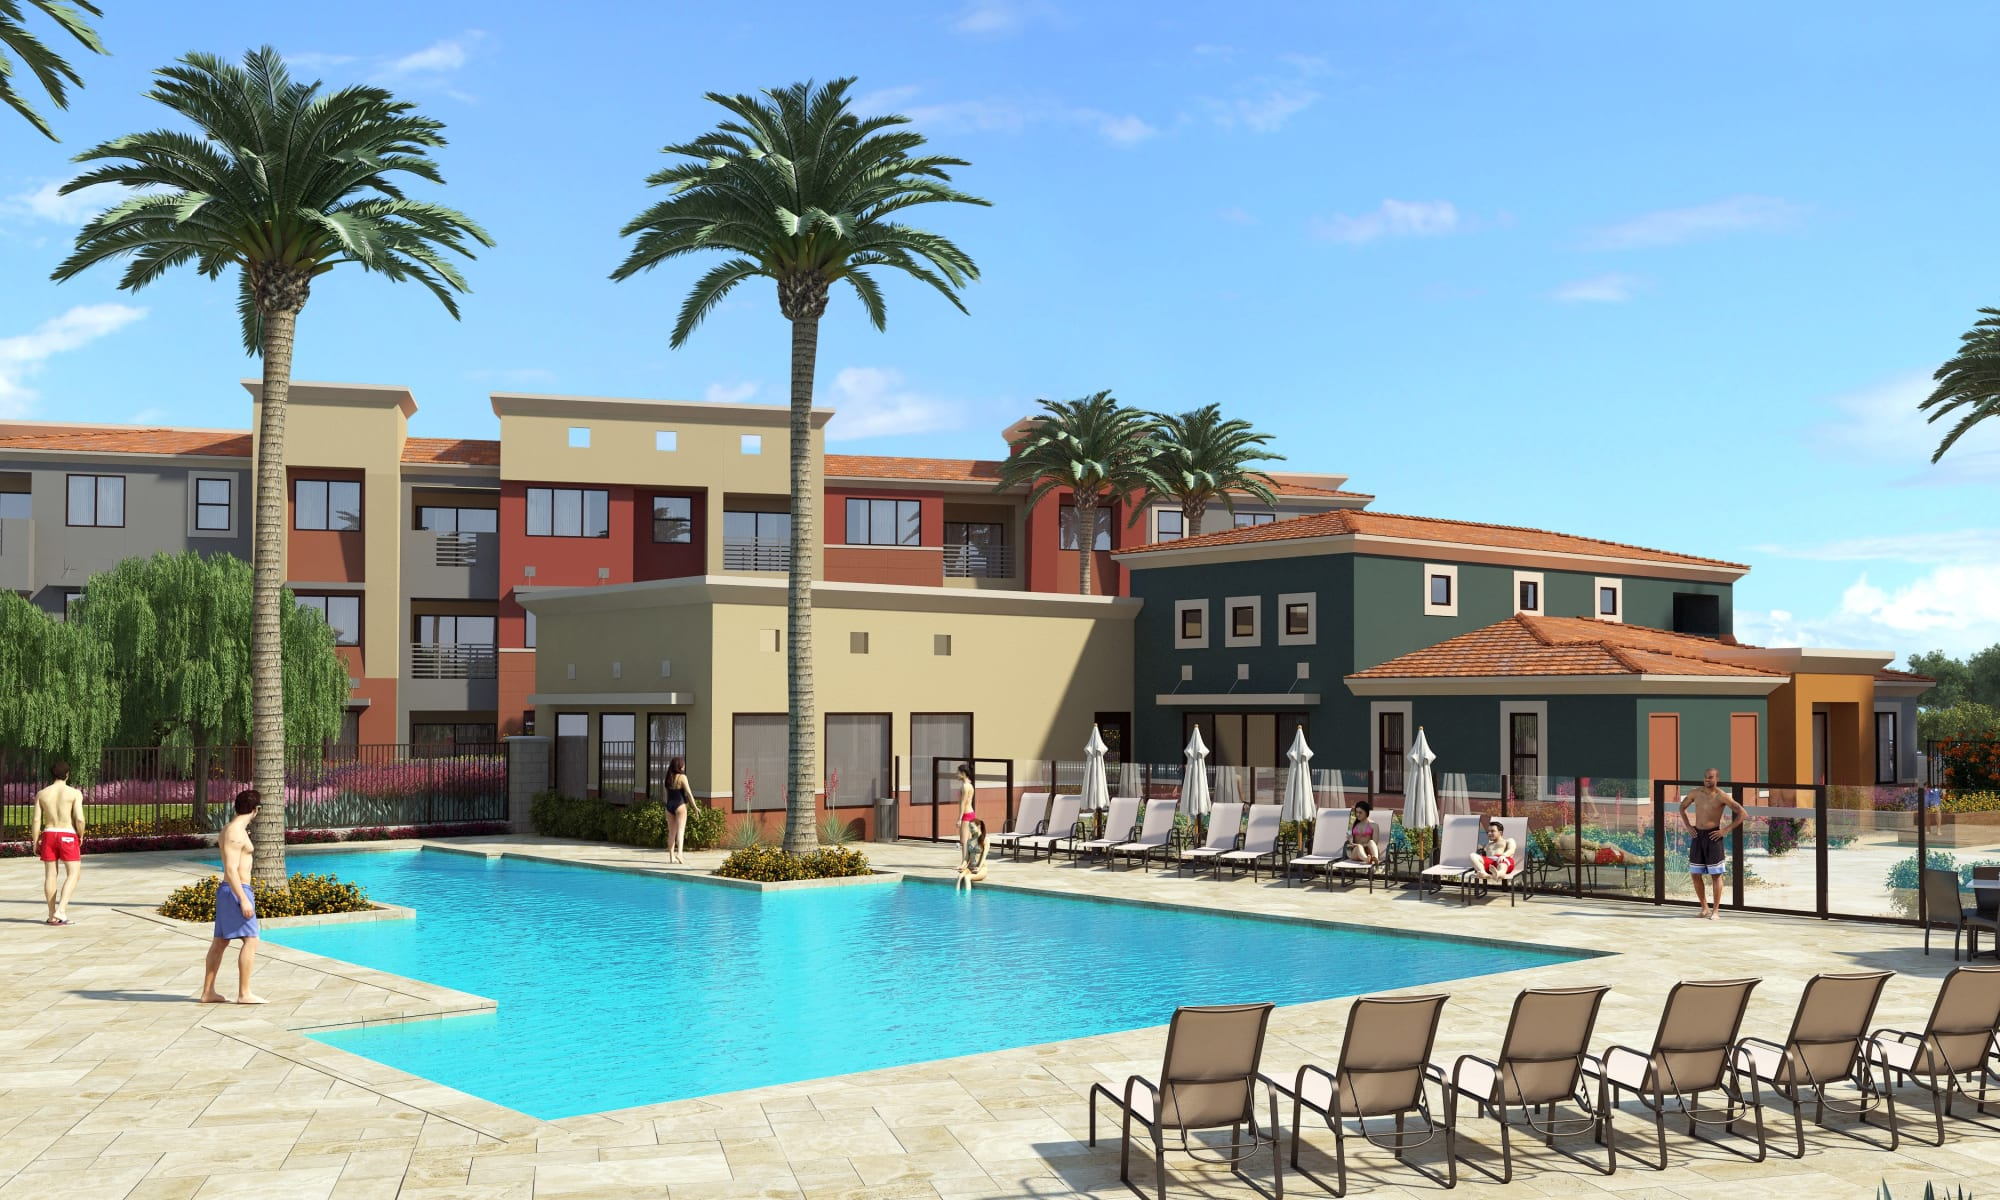 Render of the swimming pool at Villa Vita Apartments in Peoria, Arizona